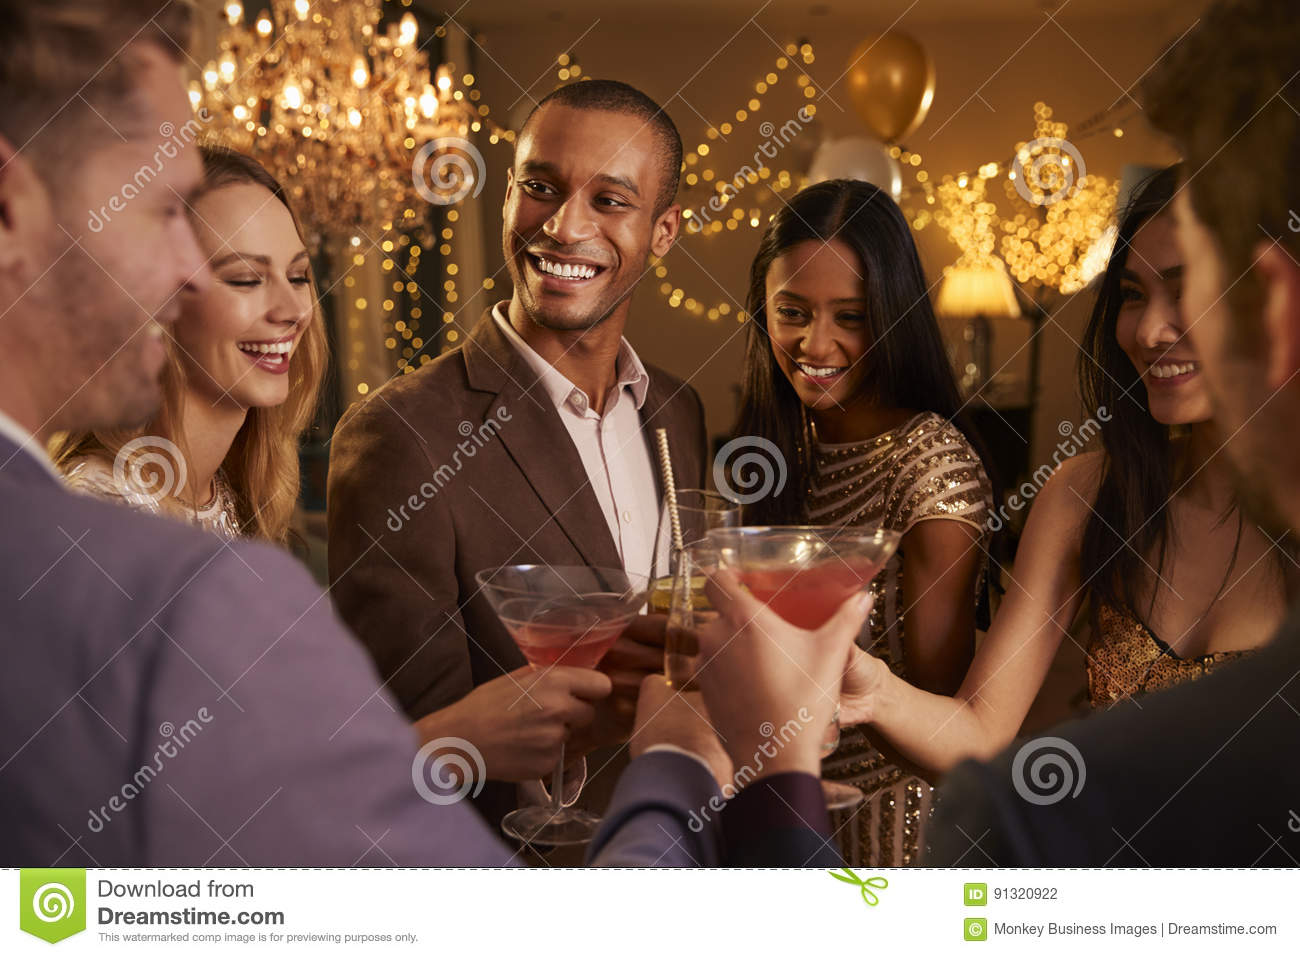 Group Of Friends With Drinks Enjoying Cocktail Party